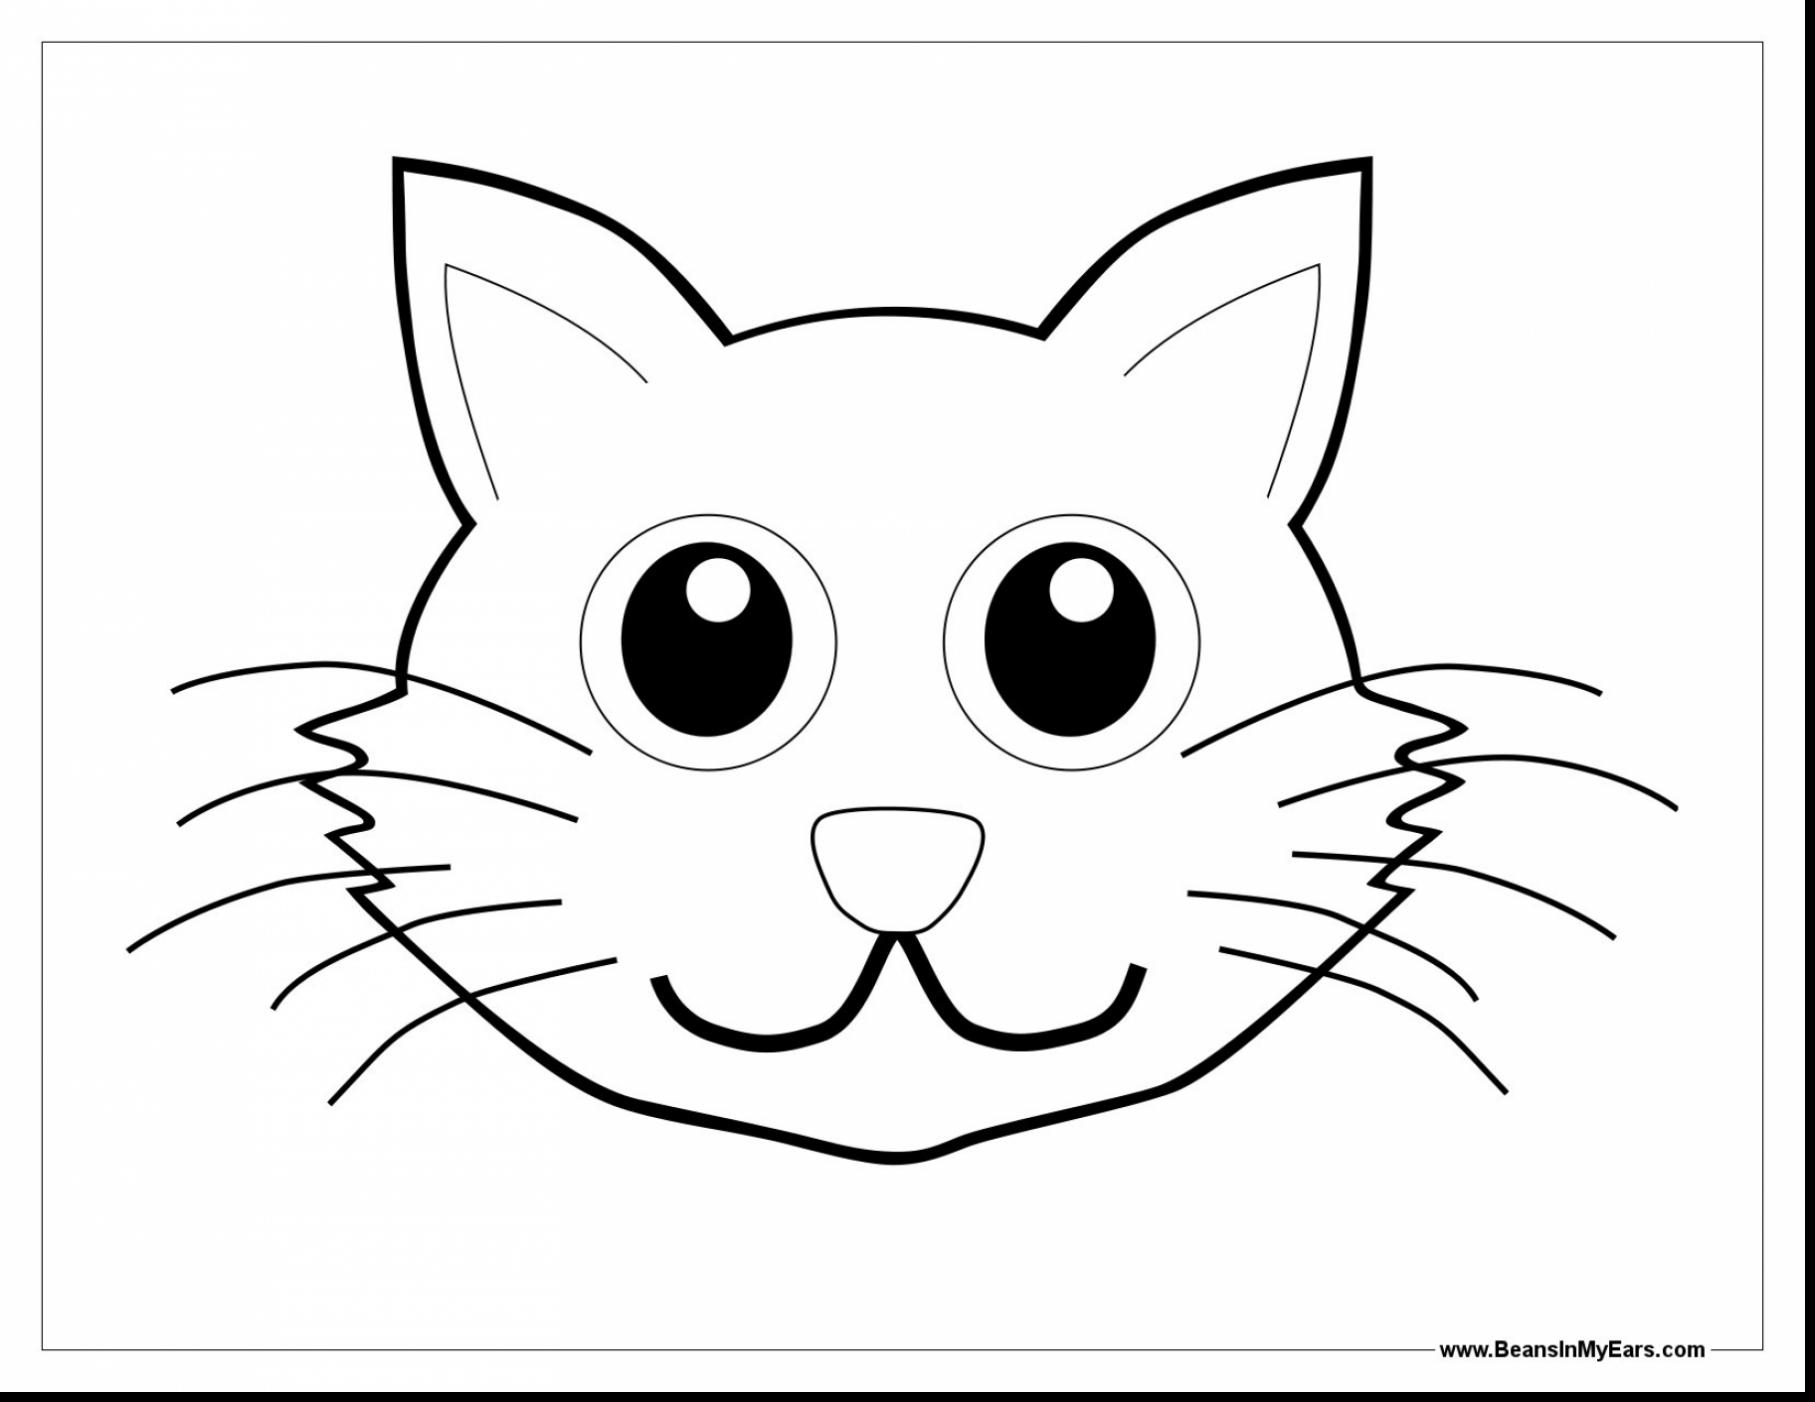 Cat Face Drawing Cartoon at GetDrawings.com | Free for personal use ...